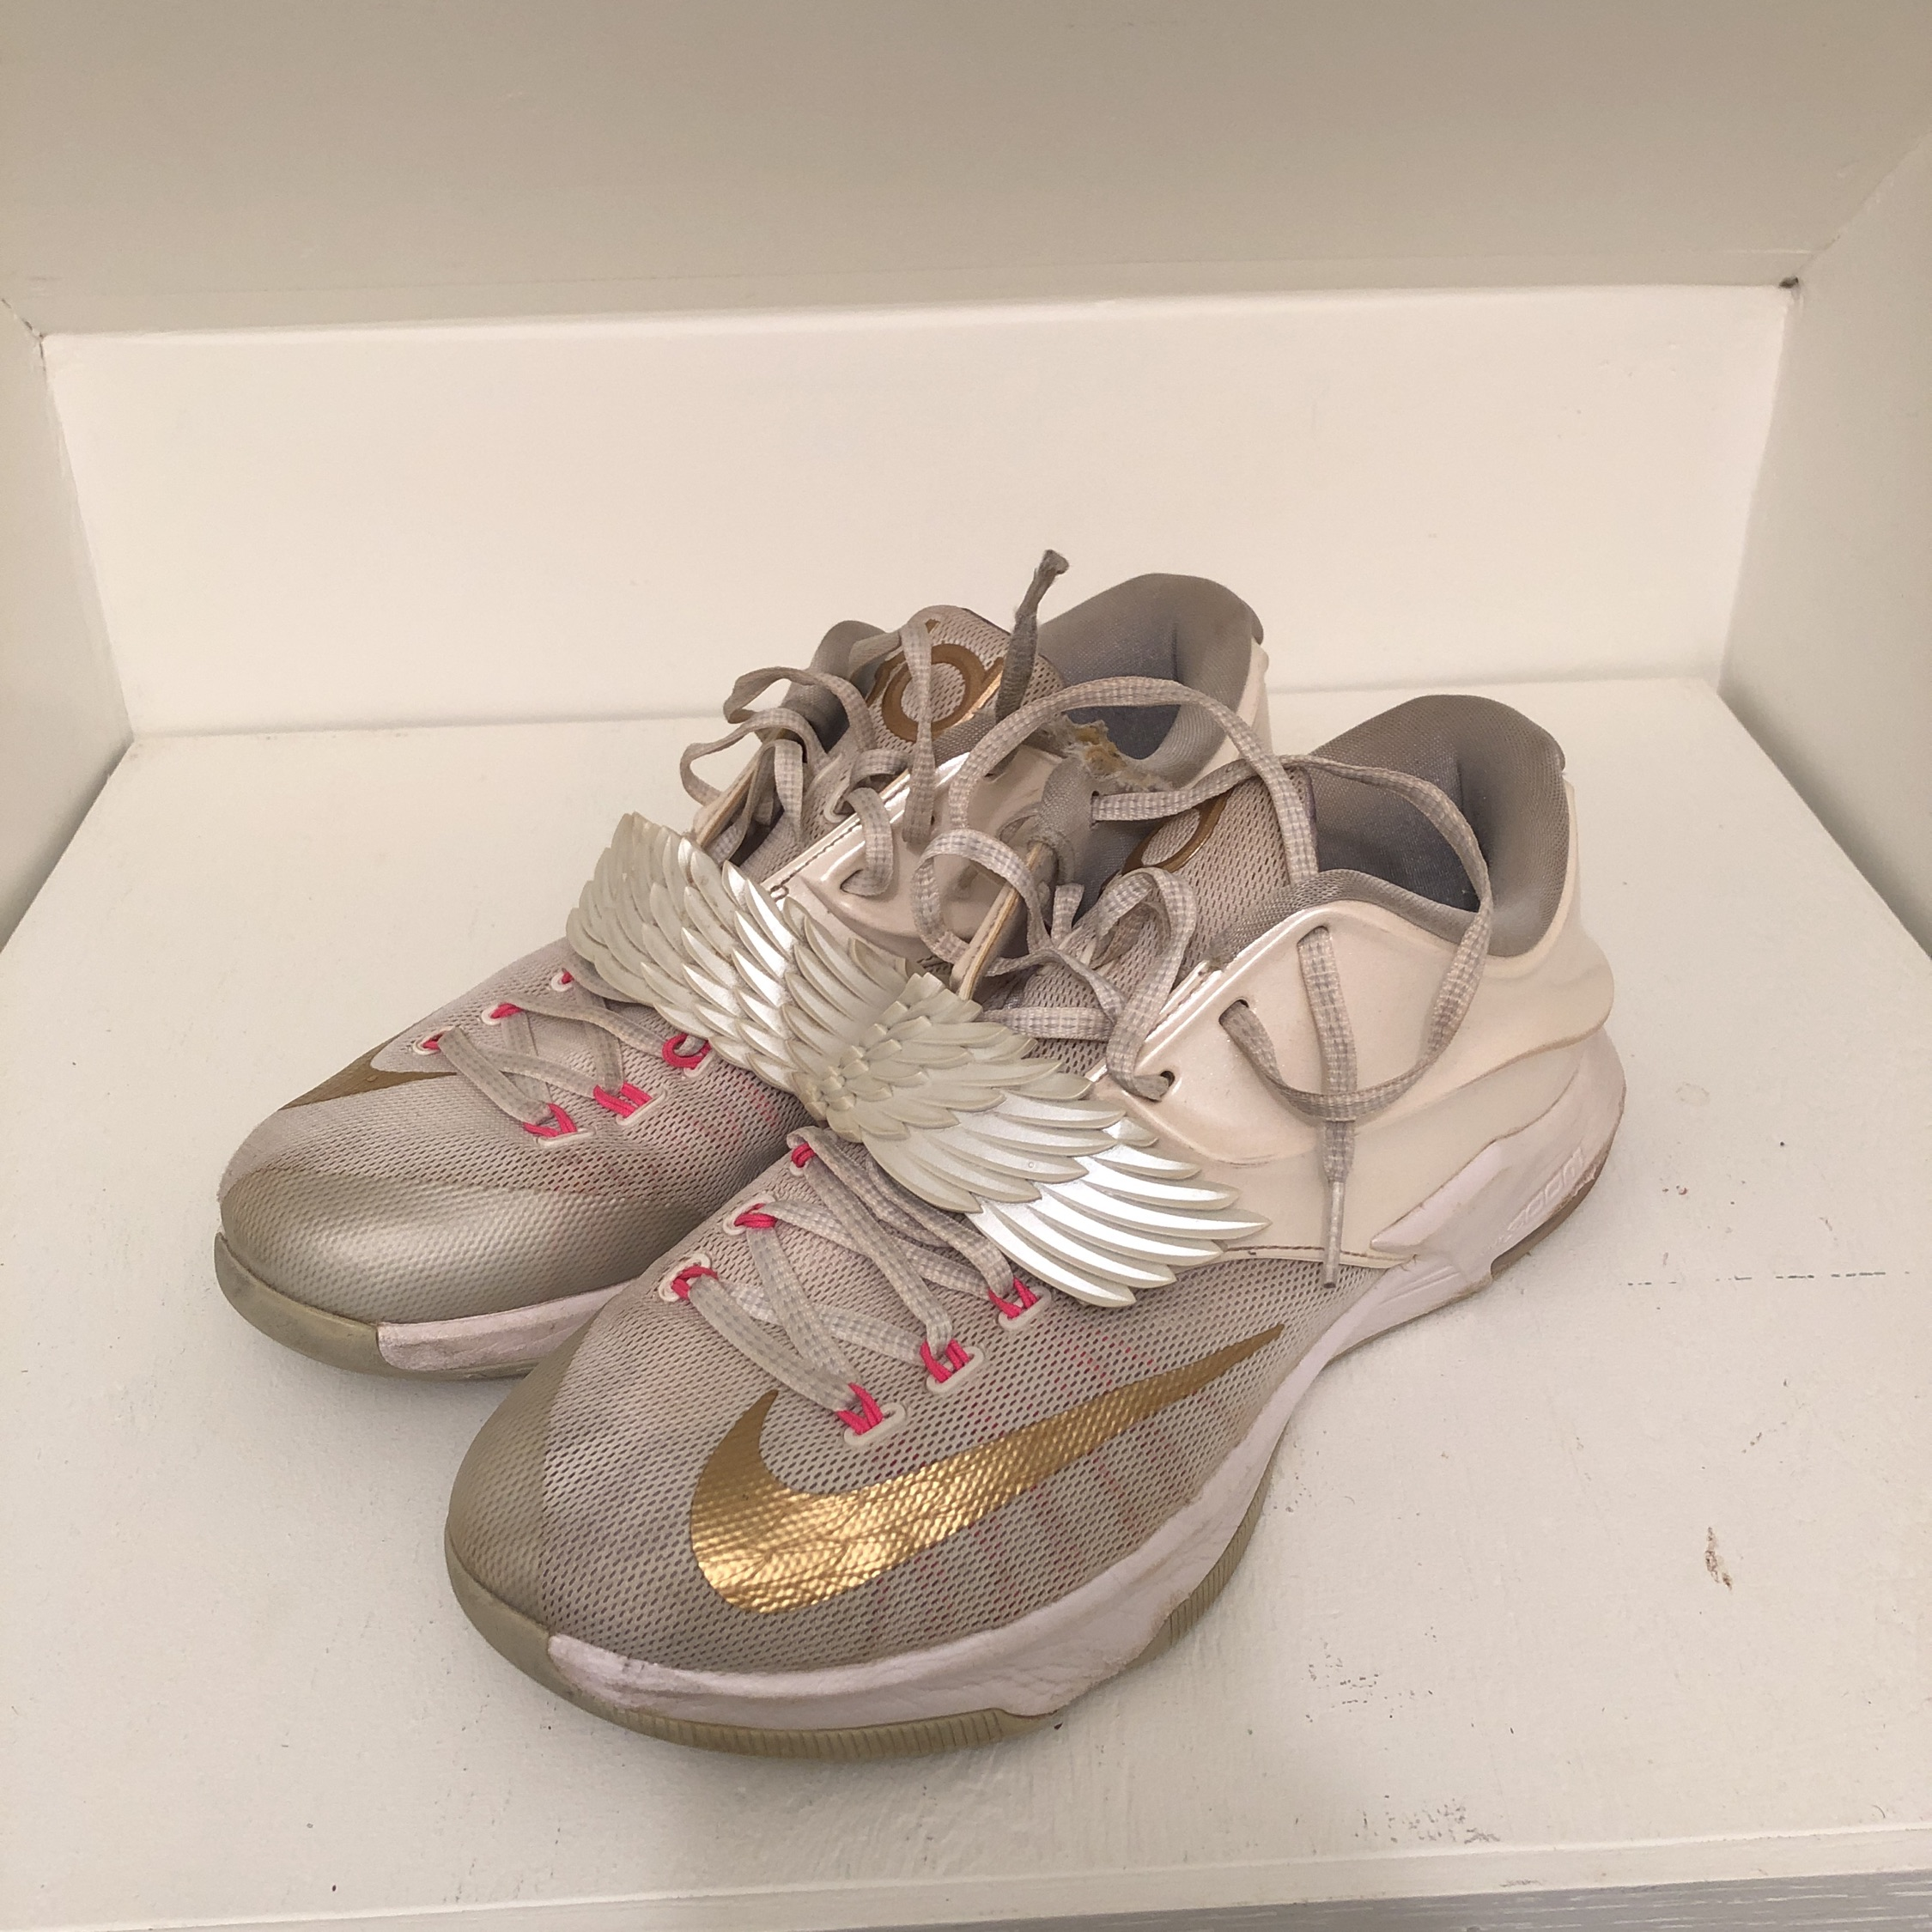 best sneakers 5a2ae b9735 Kd 7 Aunt Pearl